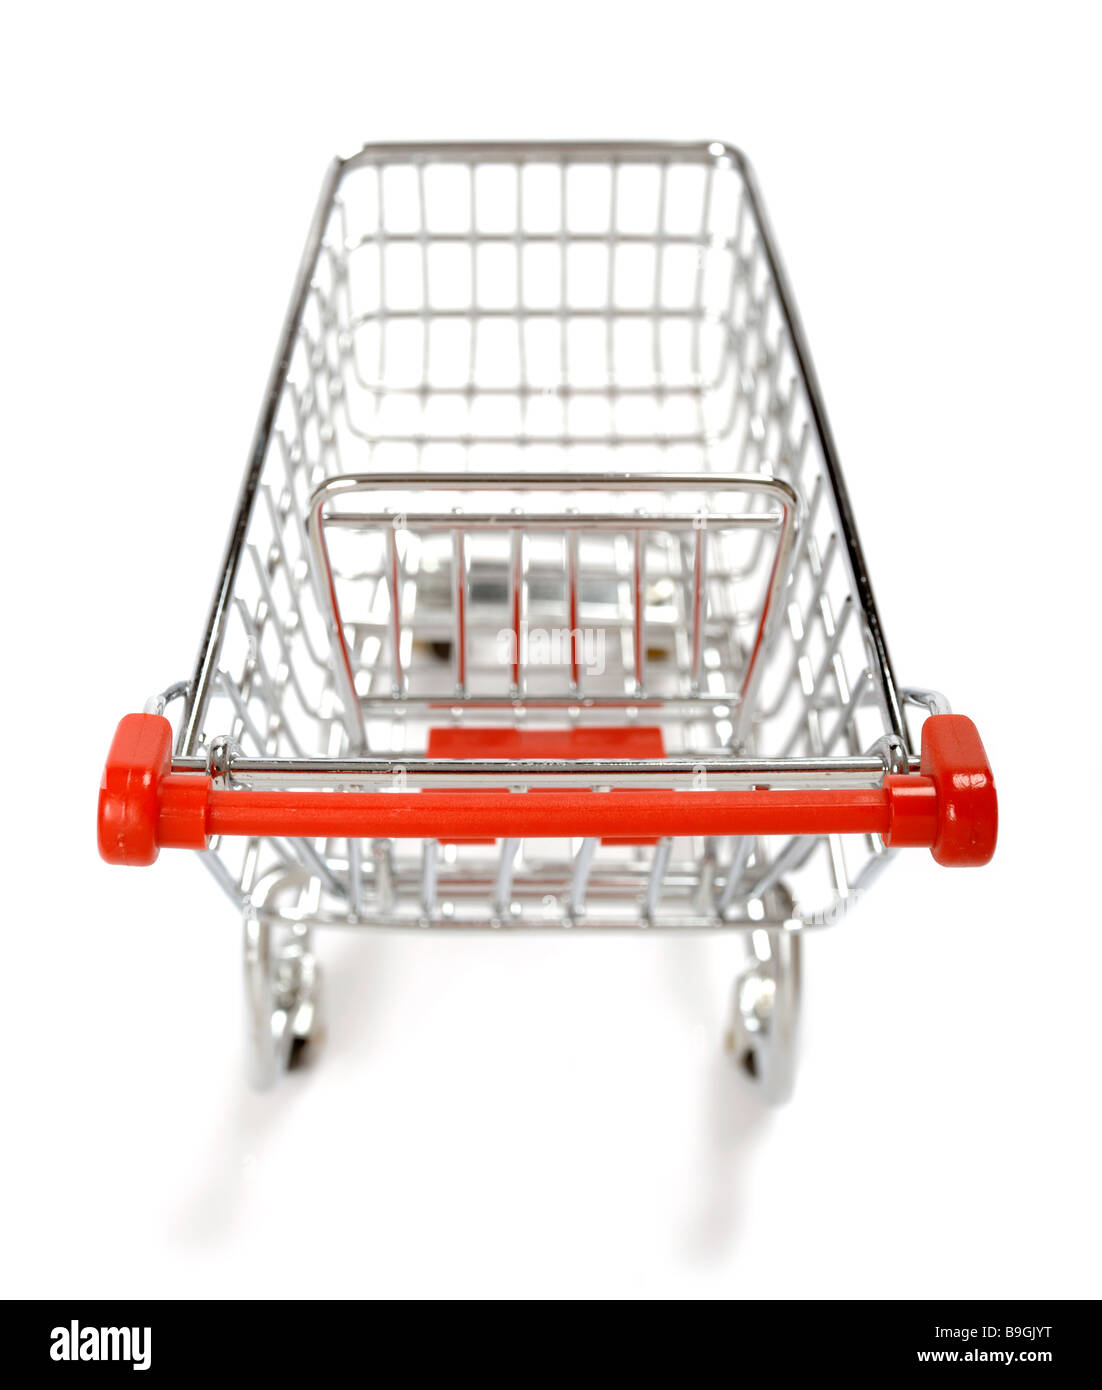 Miniature supermarket trolley - Stock Image